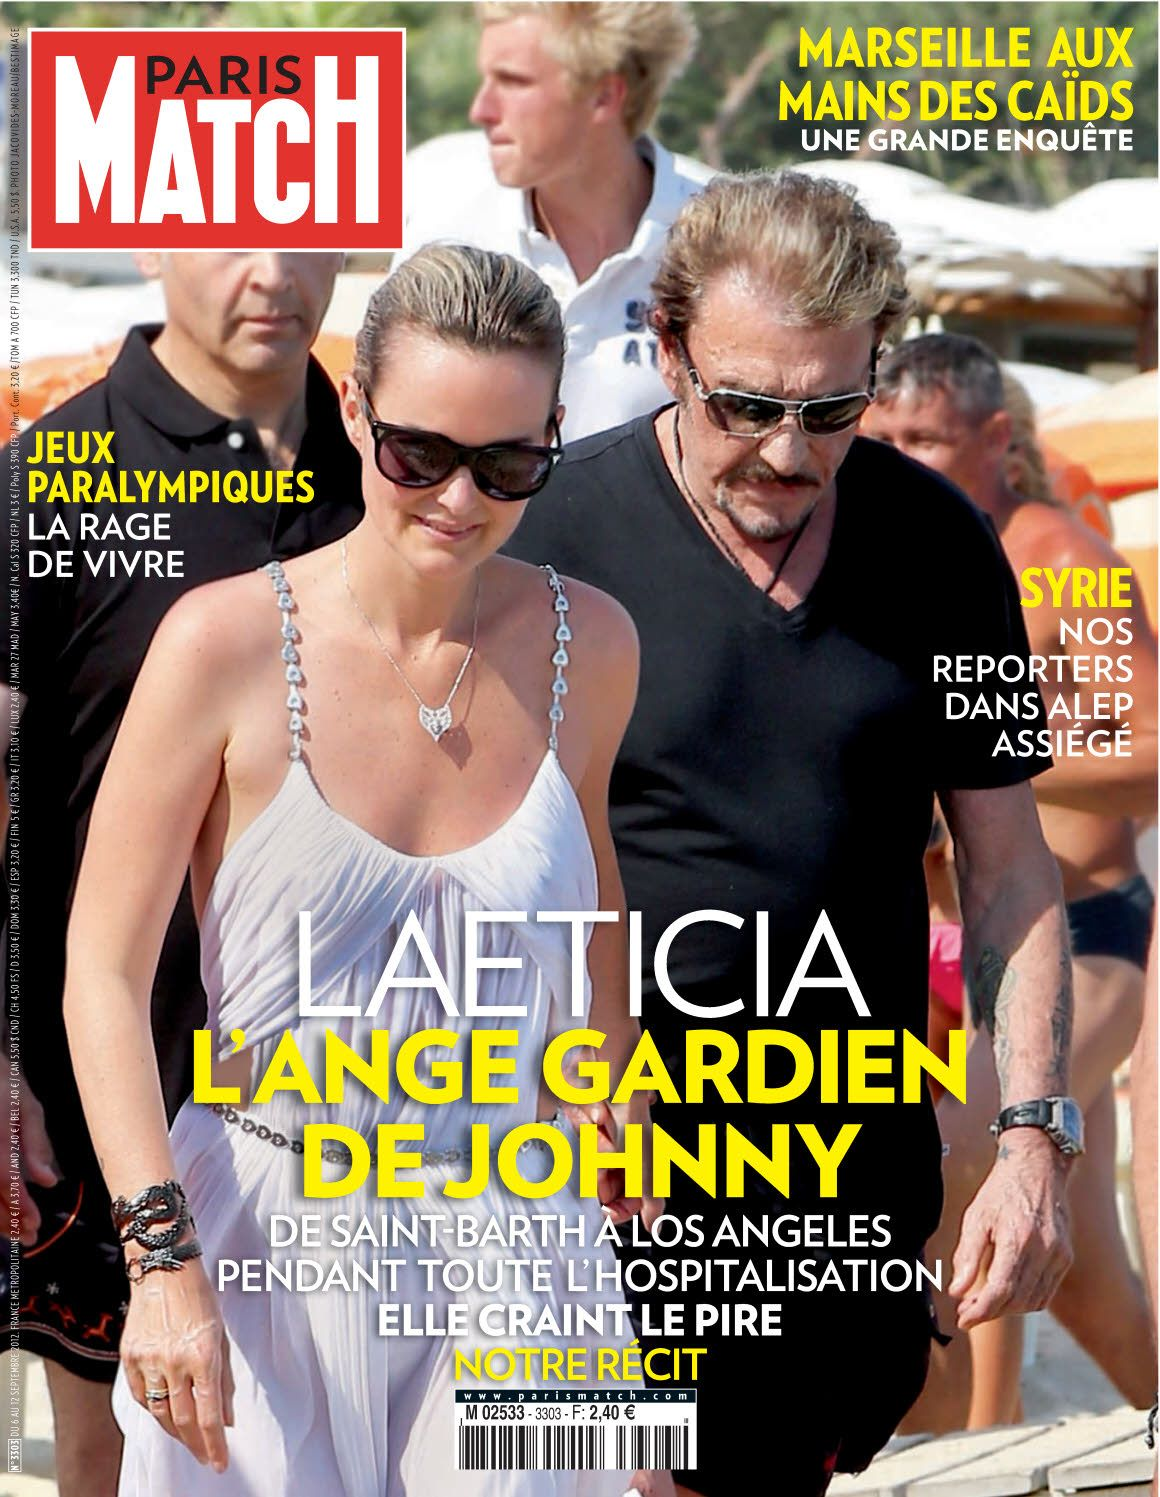 laeticia hallyday et johnny hallyday femmes en couvertures de paris match pinterest. Black Bedroom Furniture Sets. Home Design Ideas